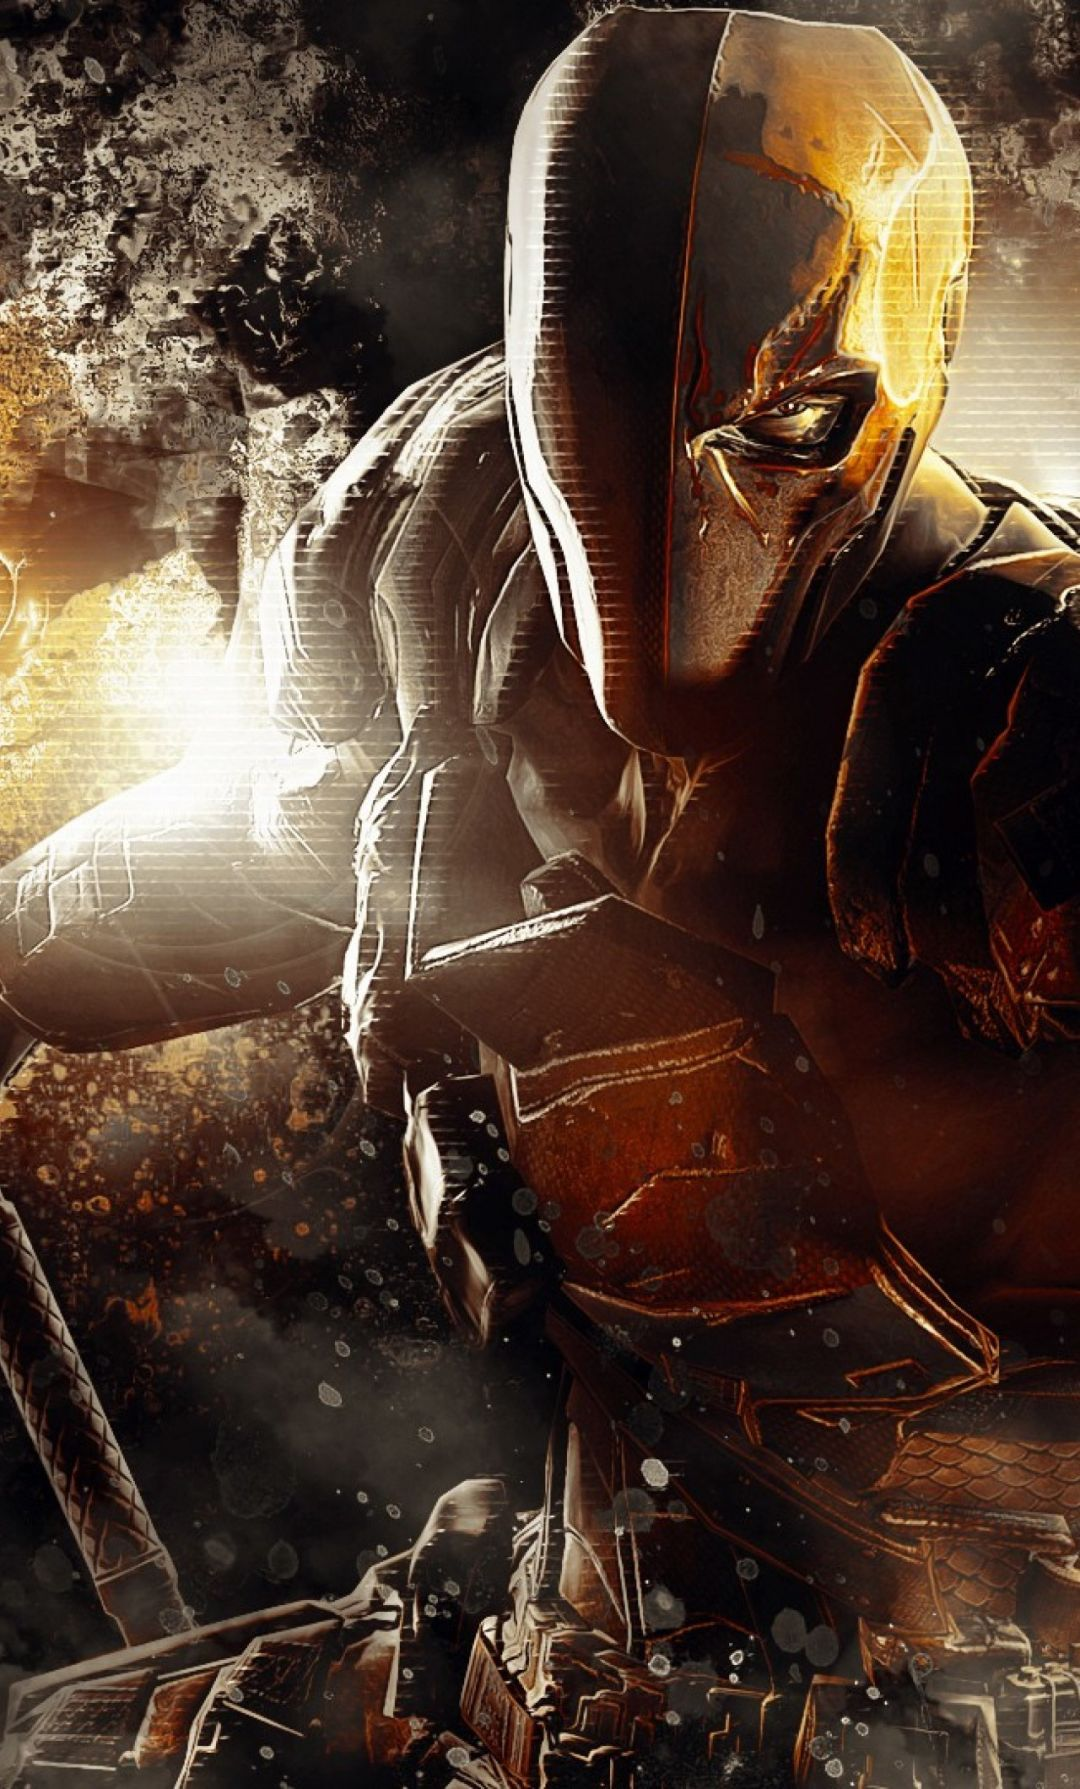 70 Deathstroke Iphone Android Iphone Desktop Hd Backgrounds Wallpapers 1080p 4k 1280x2120 2020